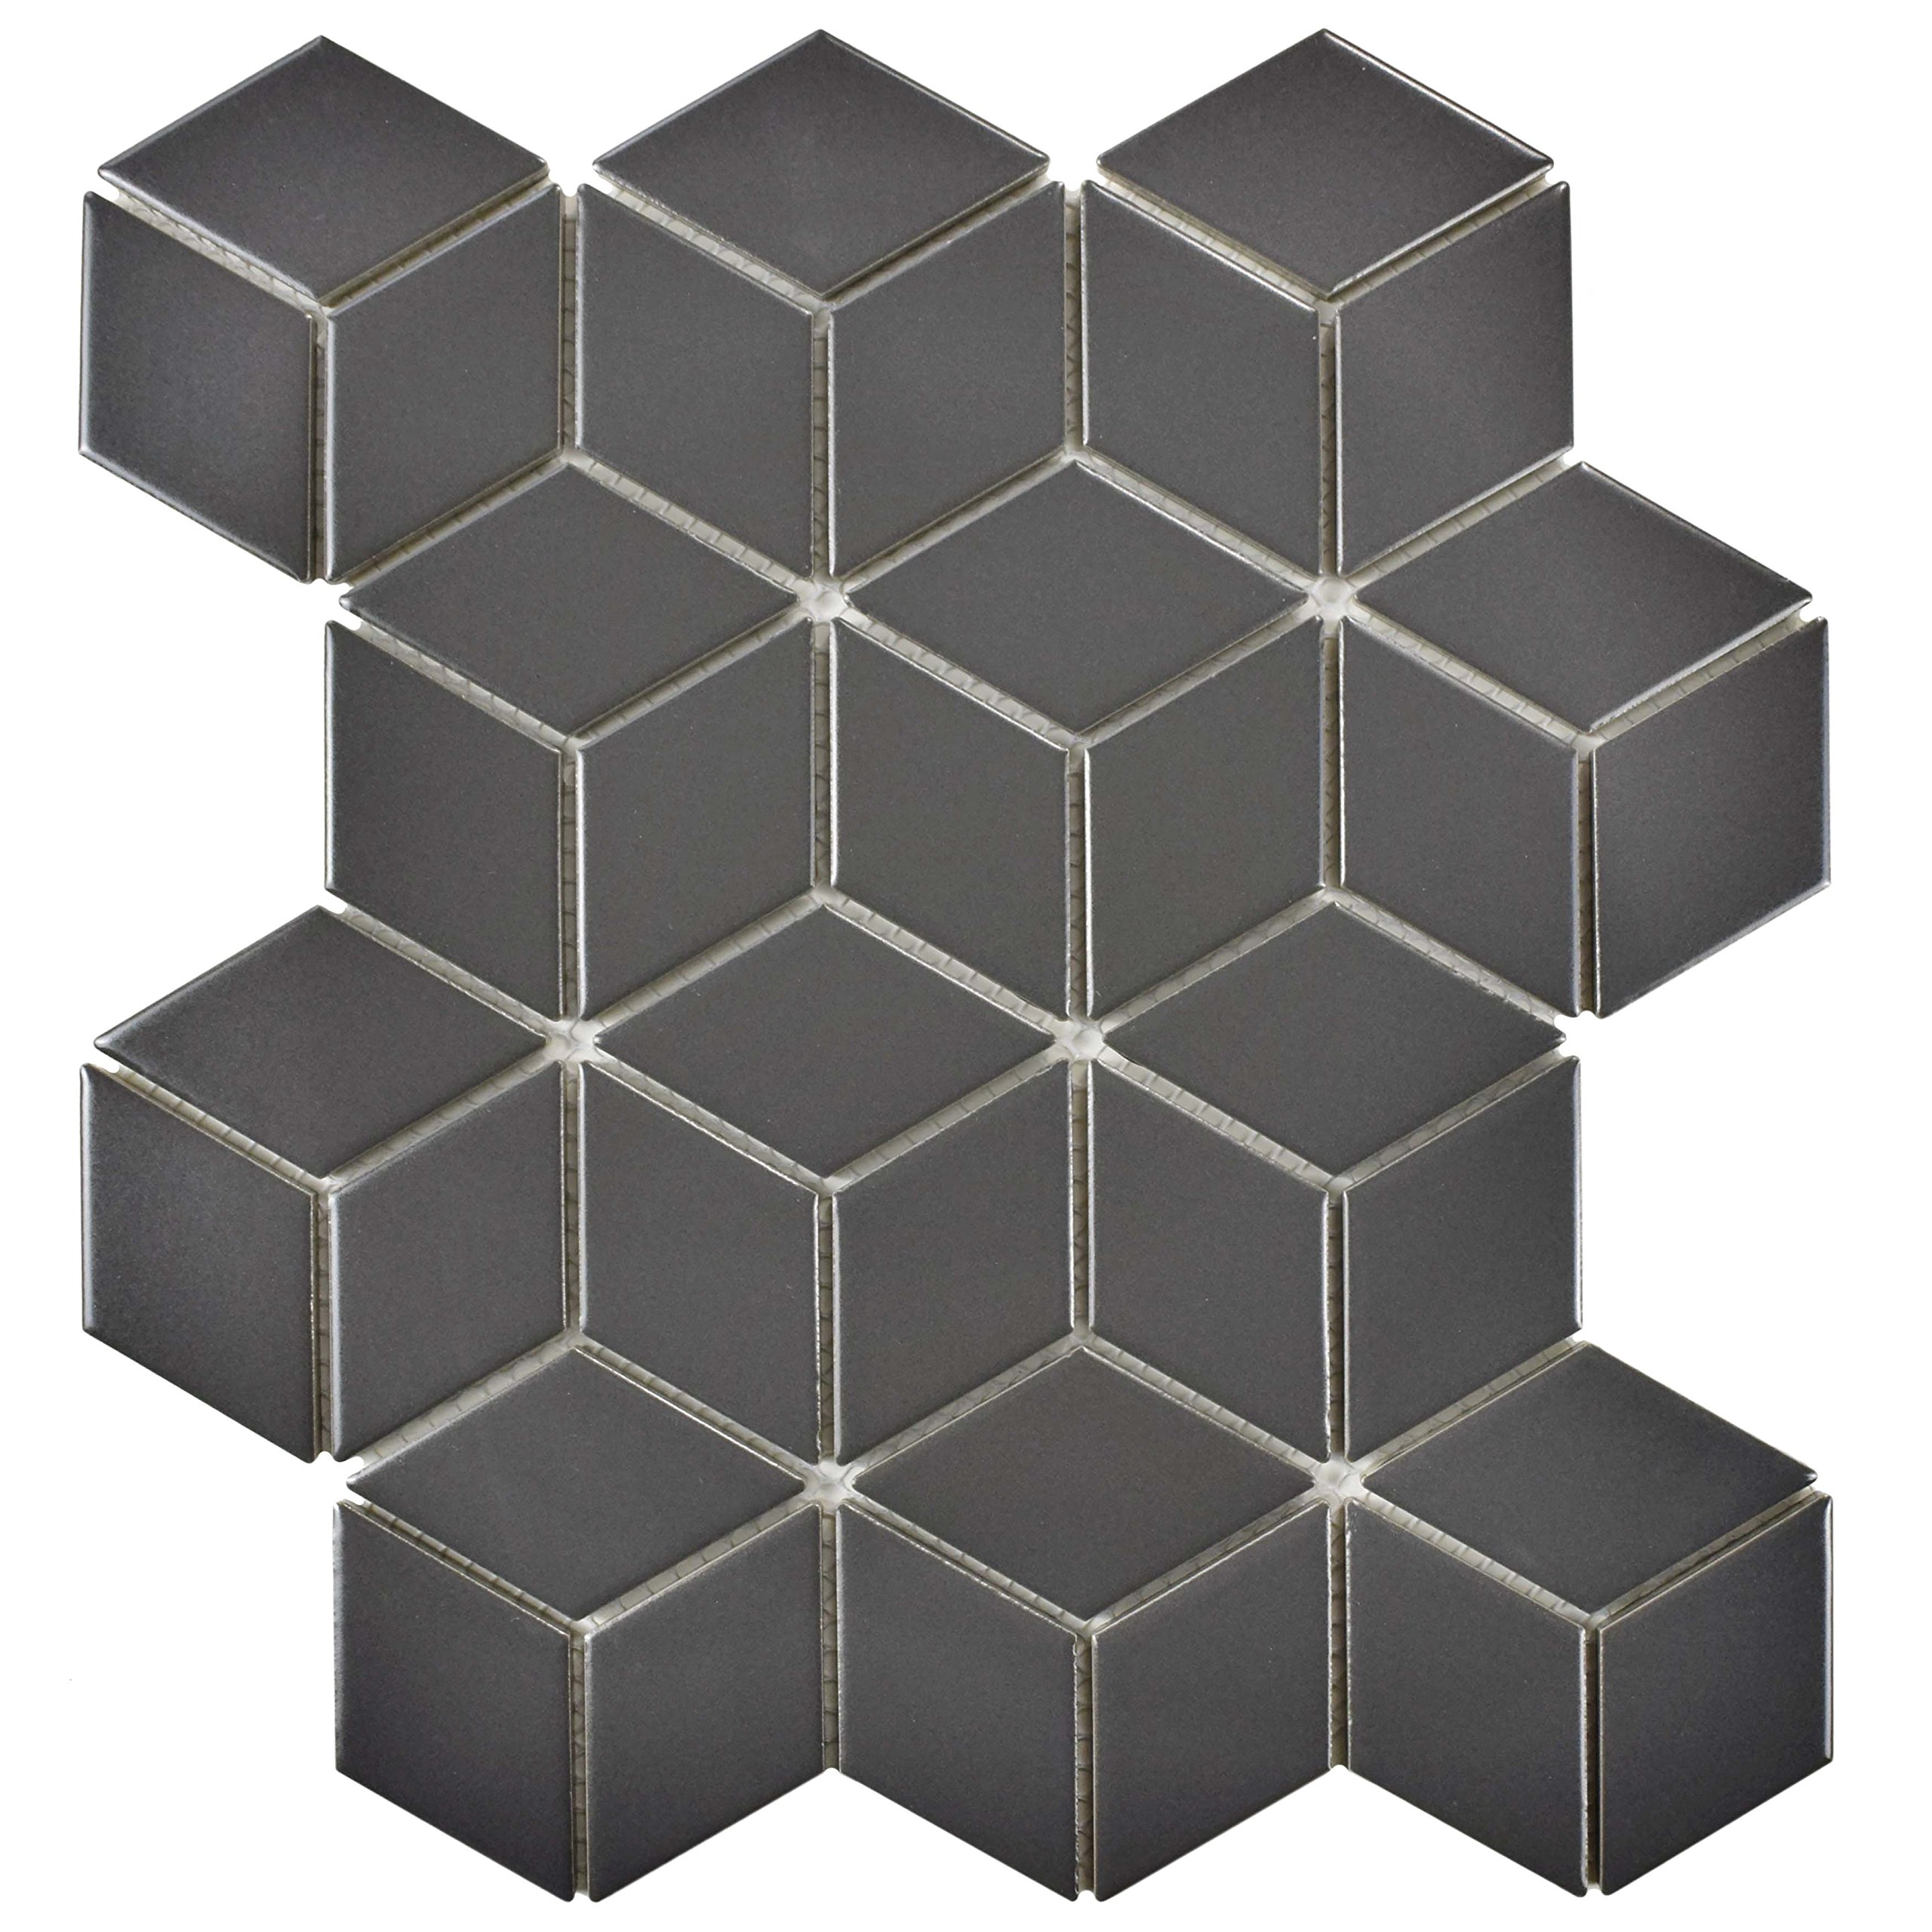 SomerTile FMTRHOMG Retro Rhombus Porcelain Mosaic Floor & Wall Tile, 10.5'' x 12.125'', Matte Grey by SOMERTILE